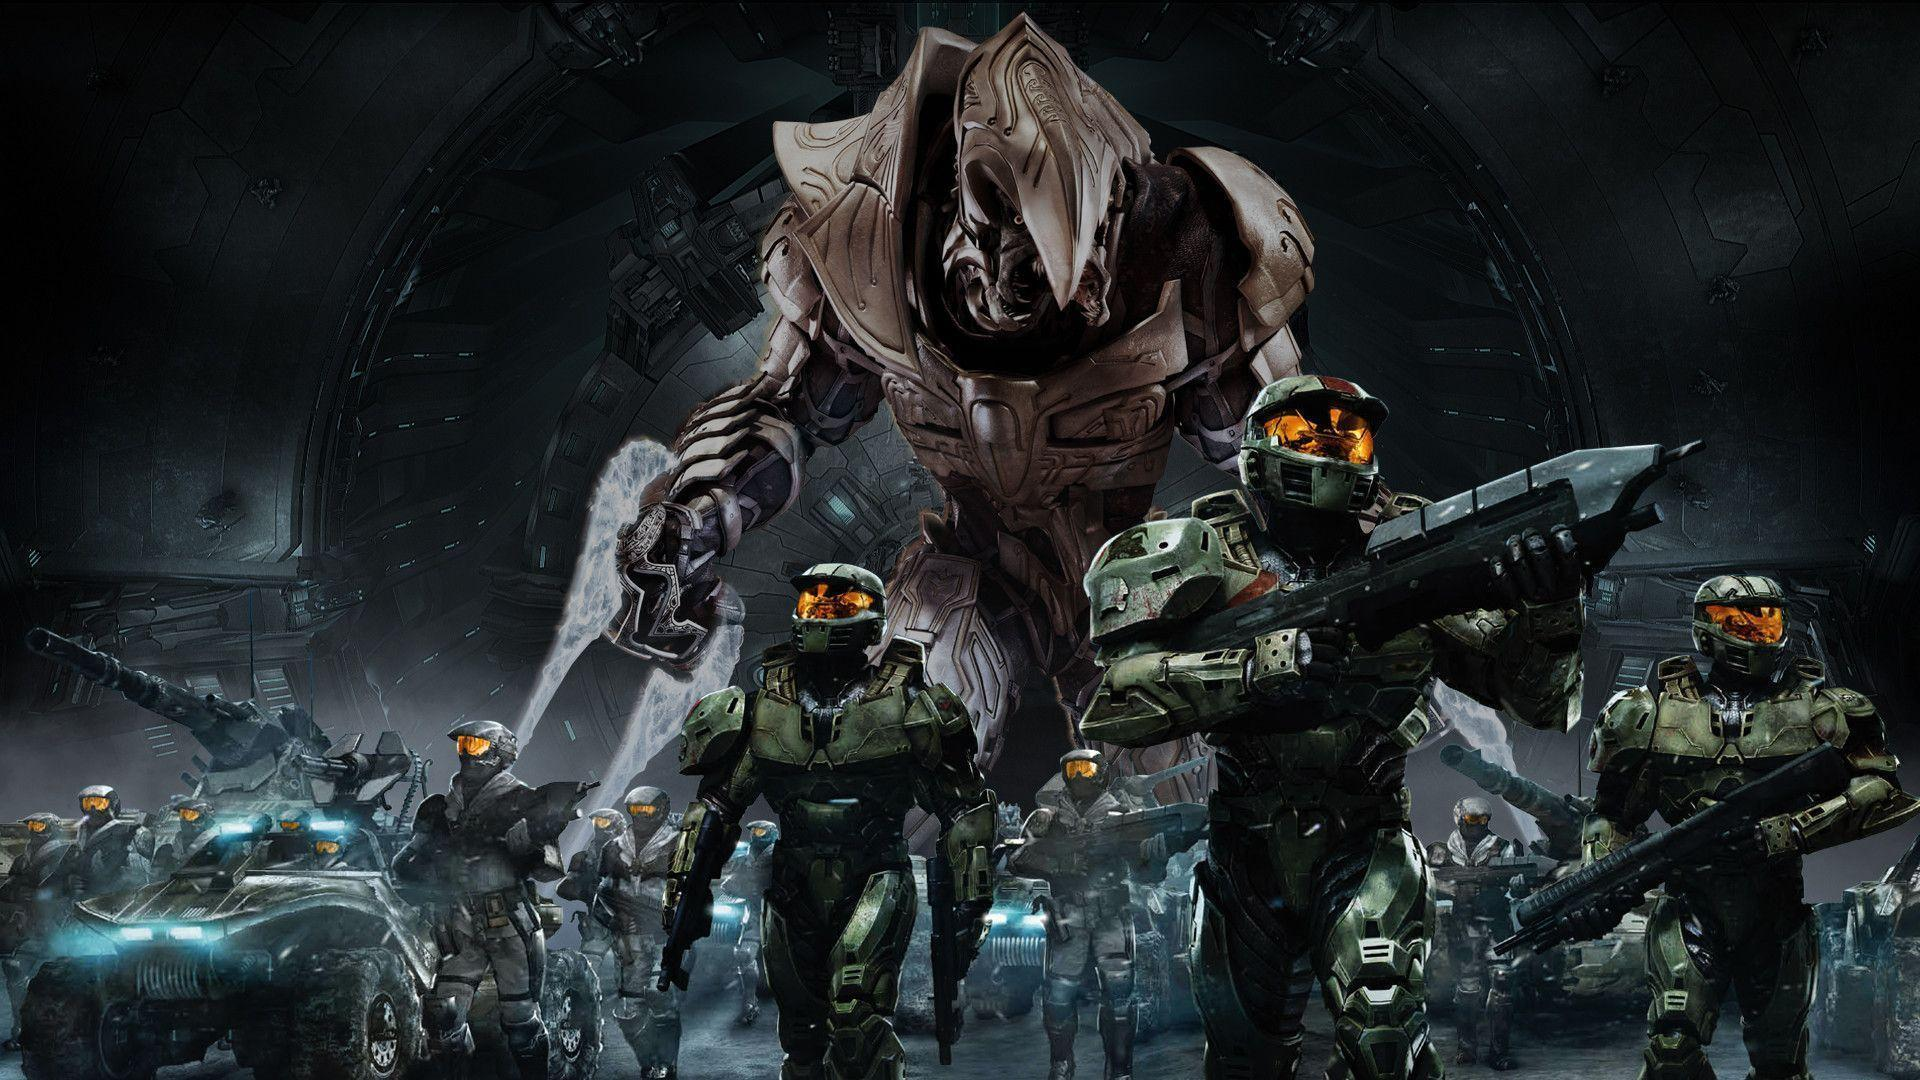 halo wars battles wallpaper - photo #6